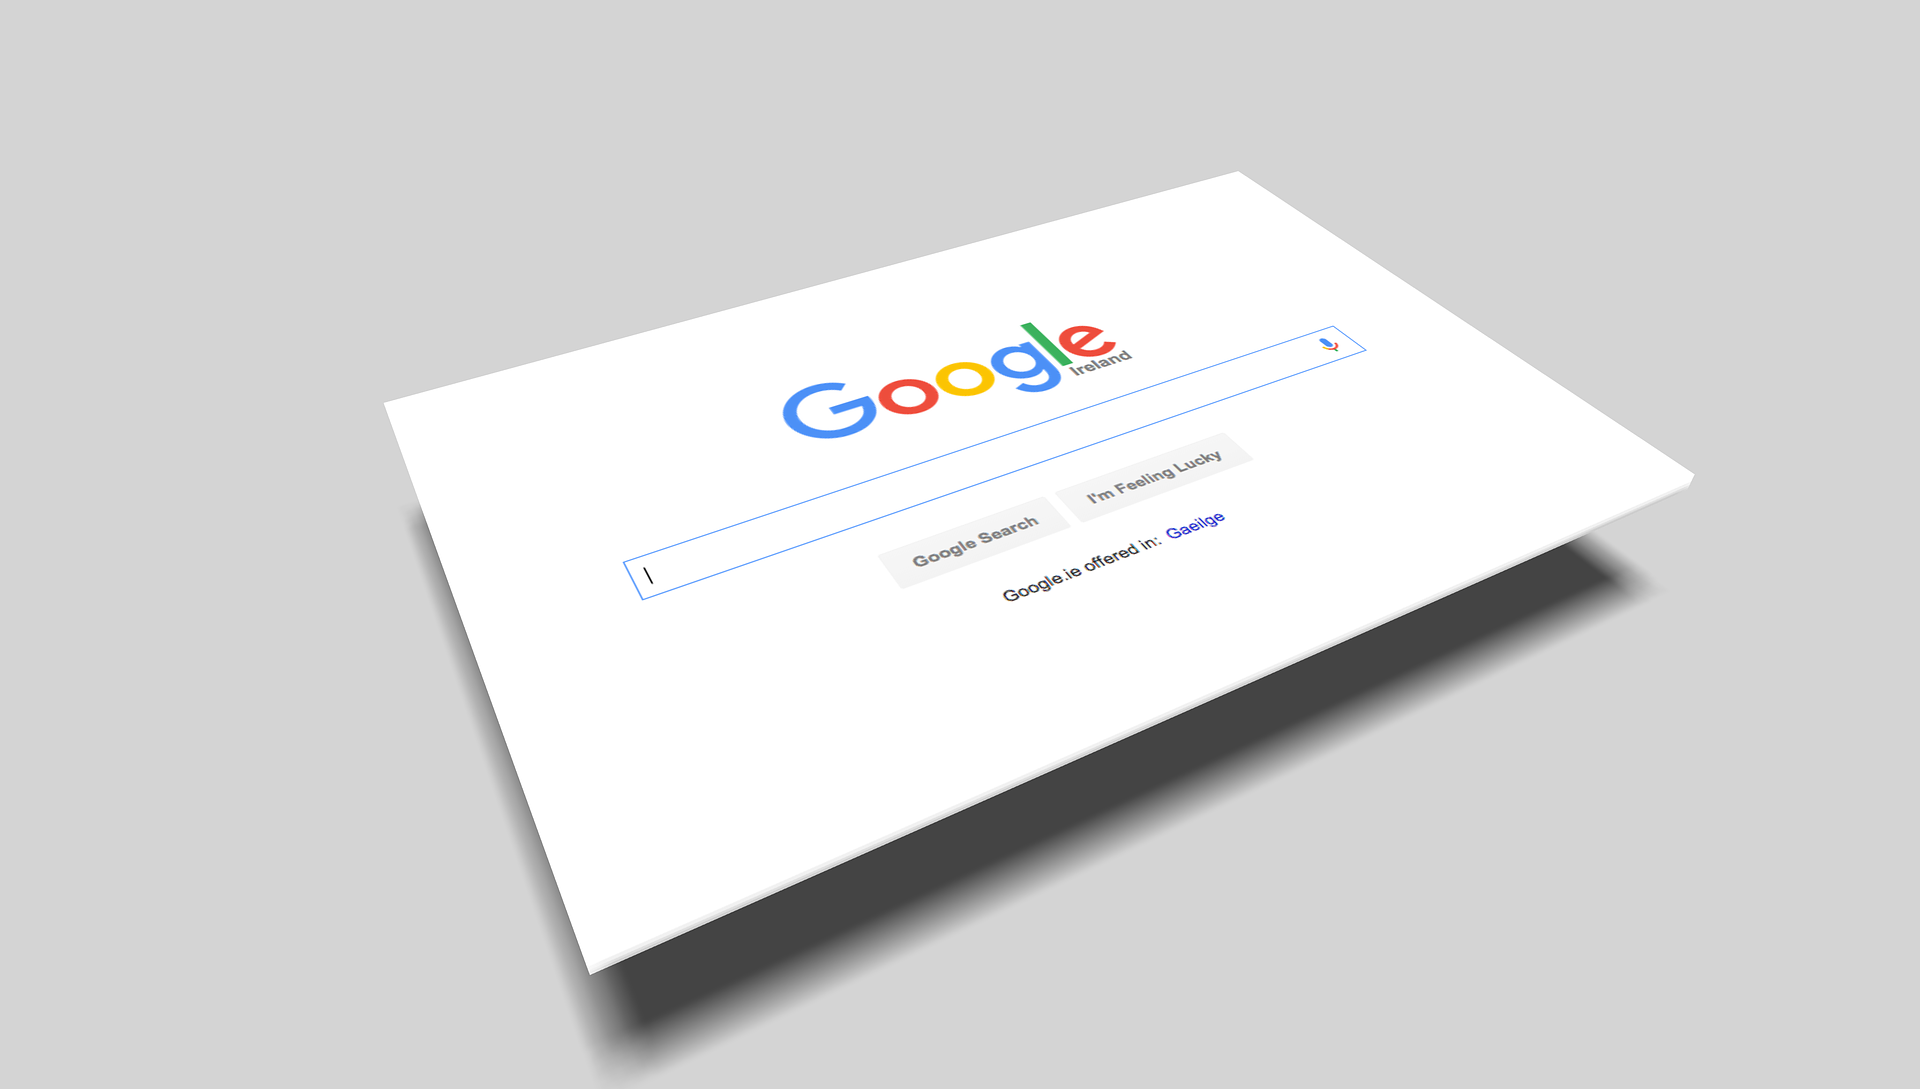 Google has started using BERT to generate top stories in the SERPs